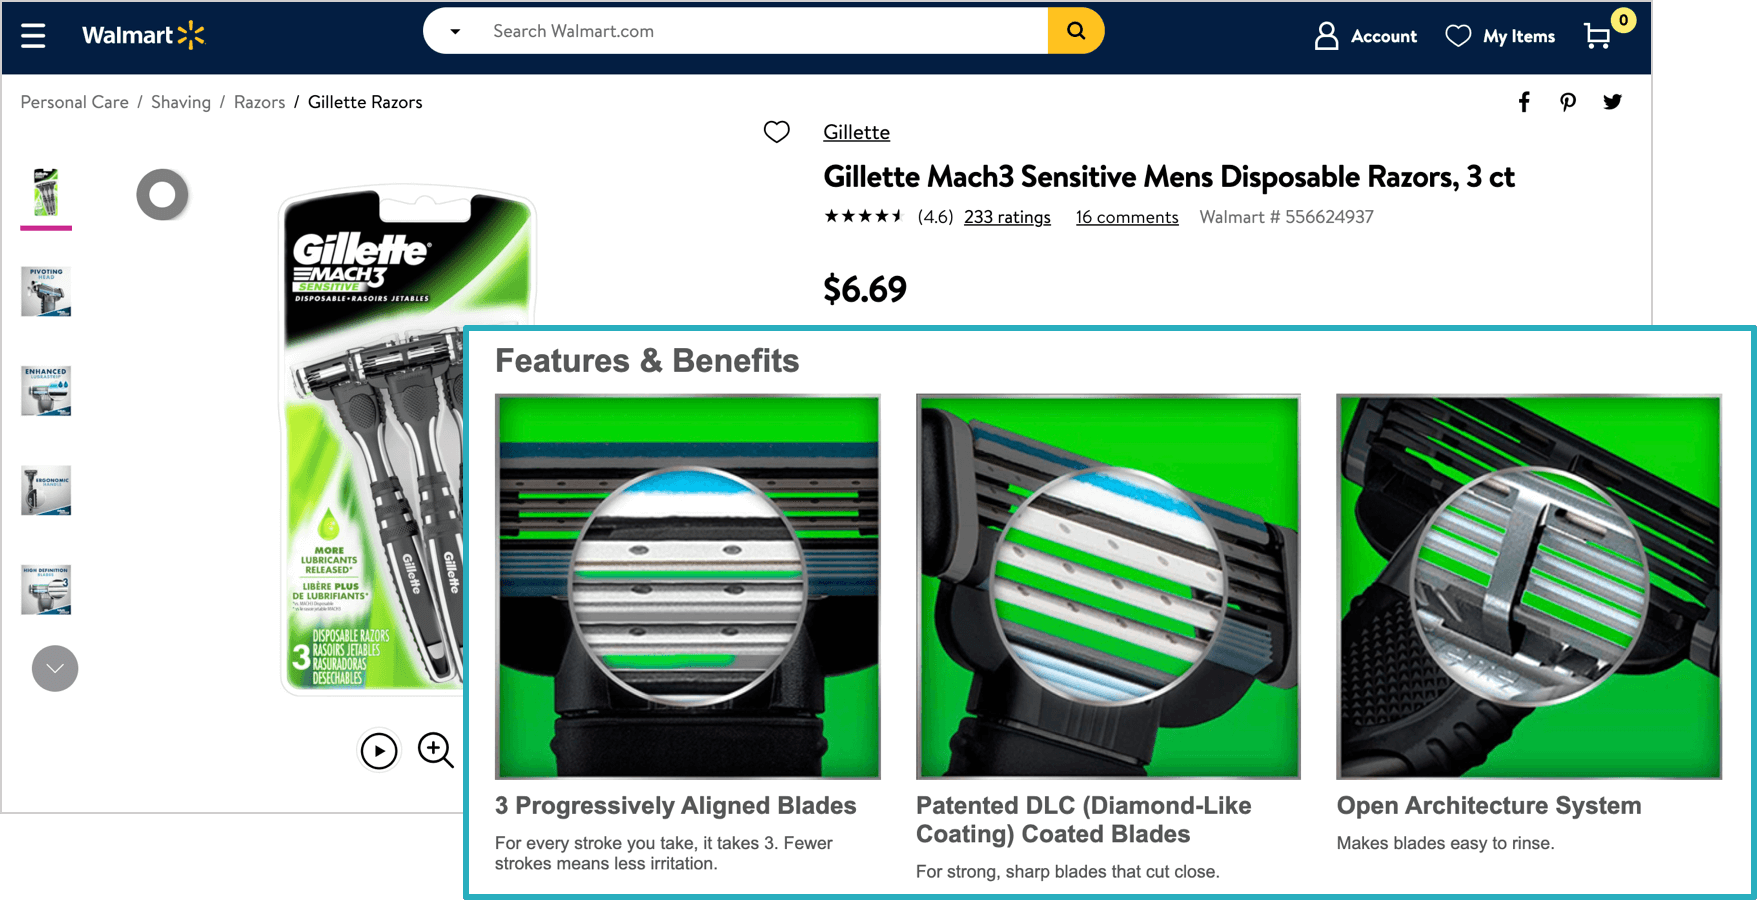 Gillette's Walmart Listing with enhanced content